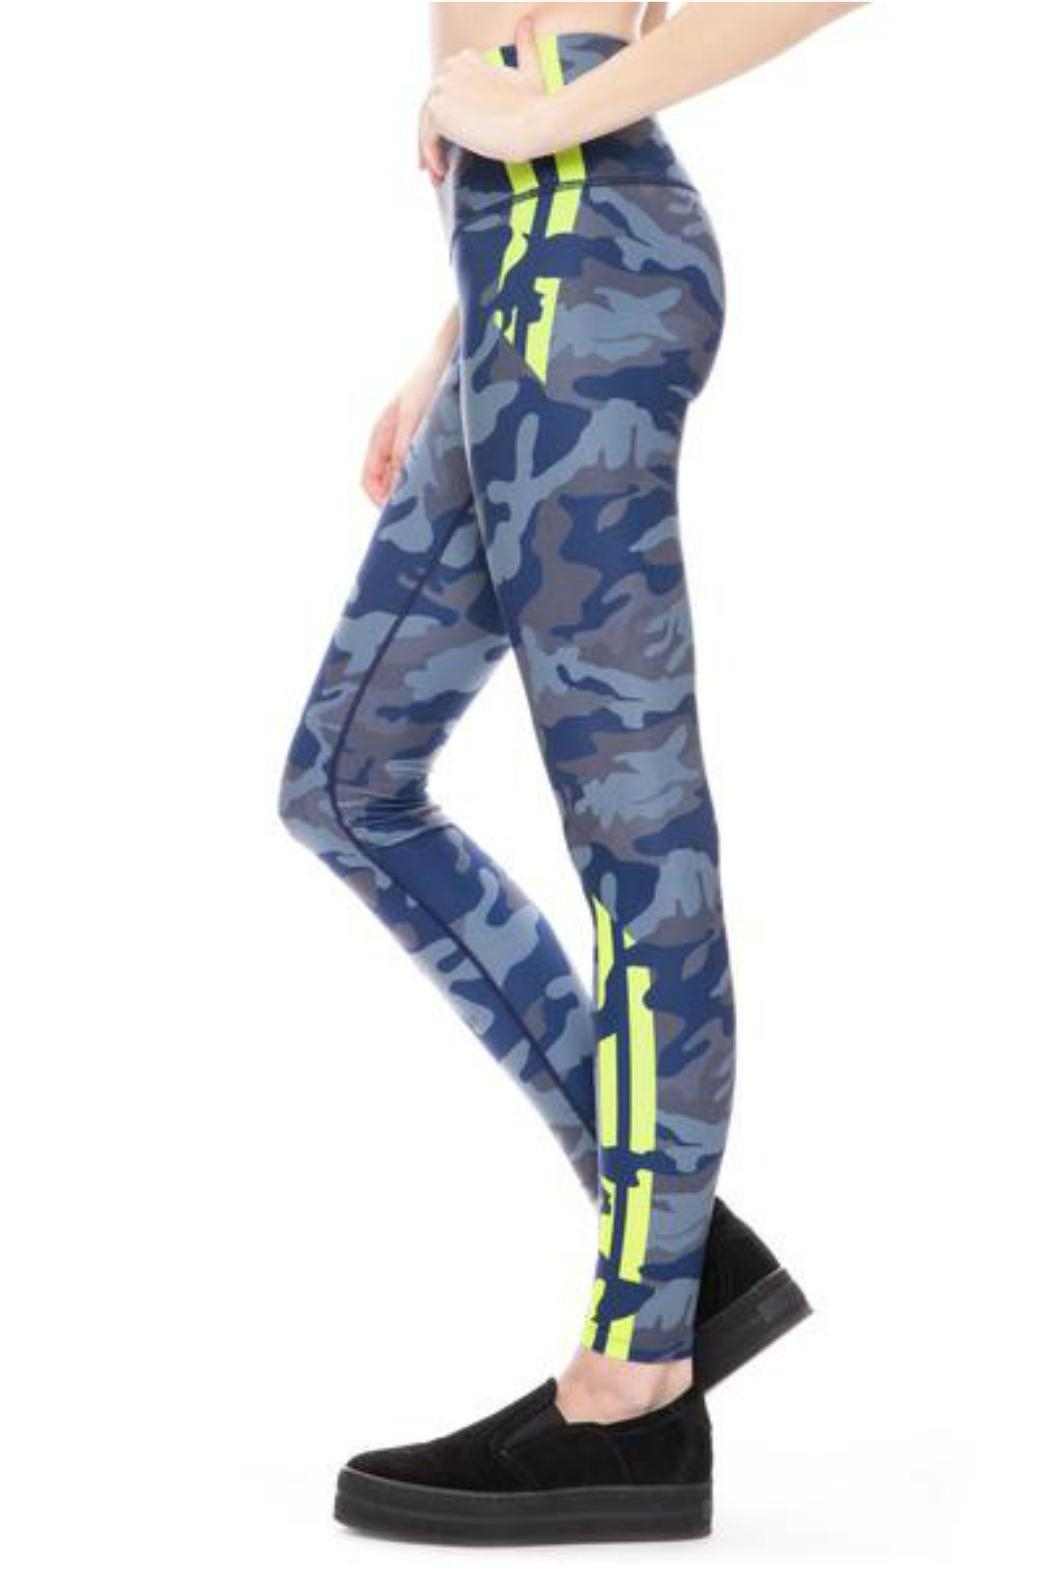 W.I.T.H.-Wear It To Heart Camo High Waist - Front Cropped Image